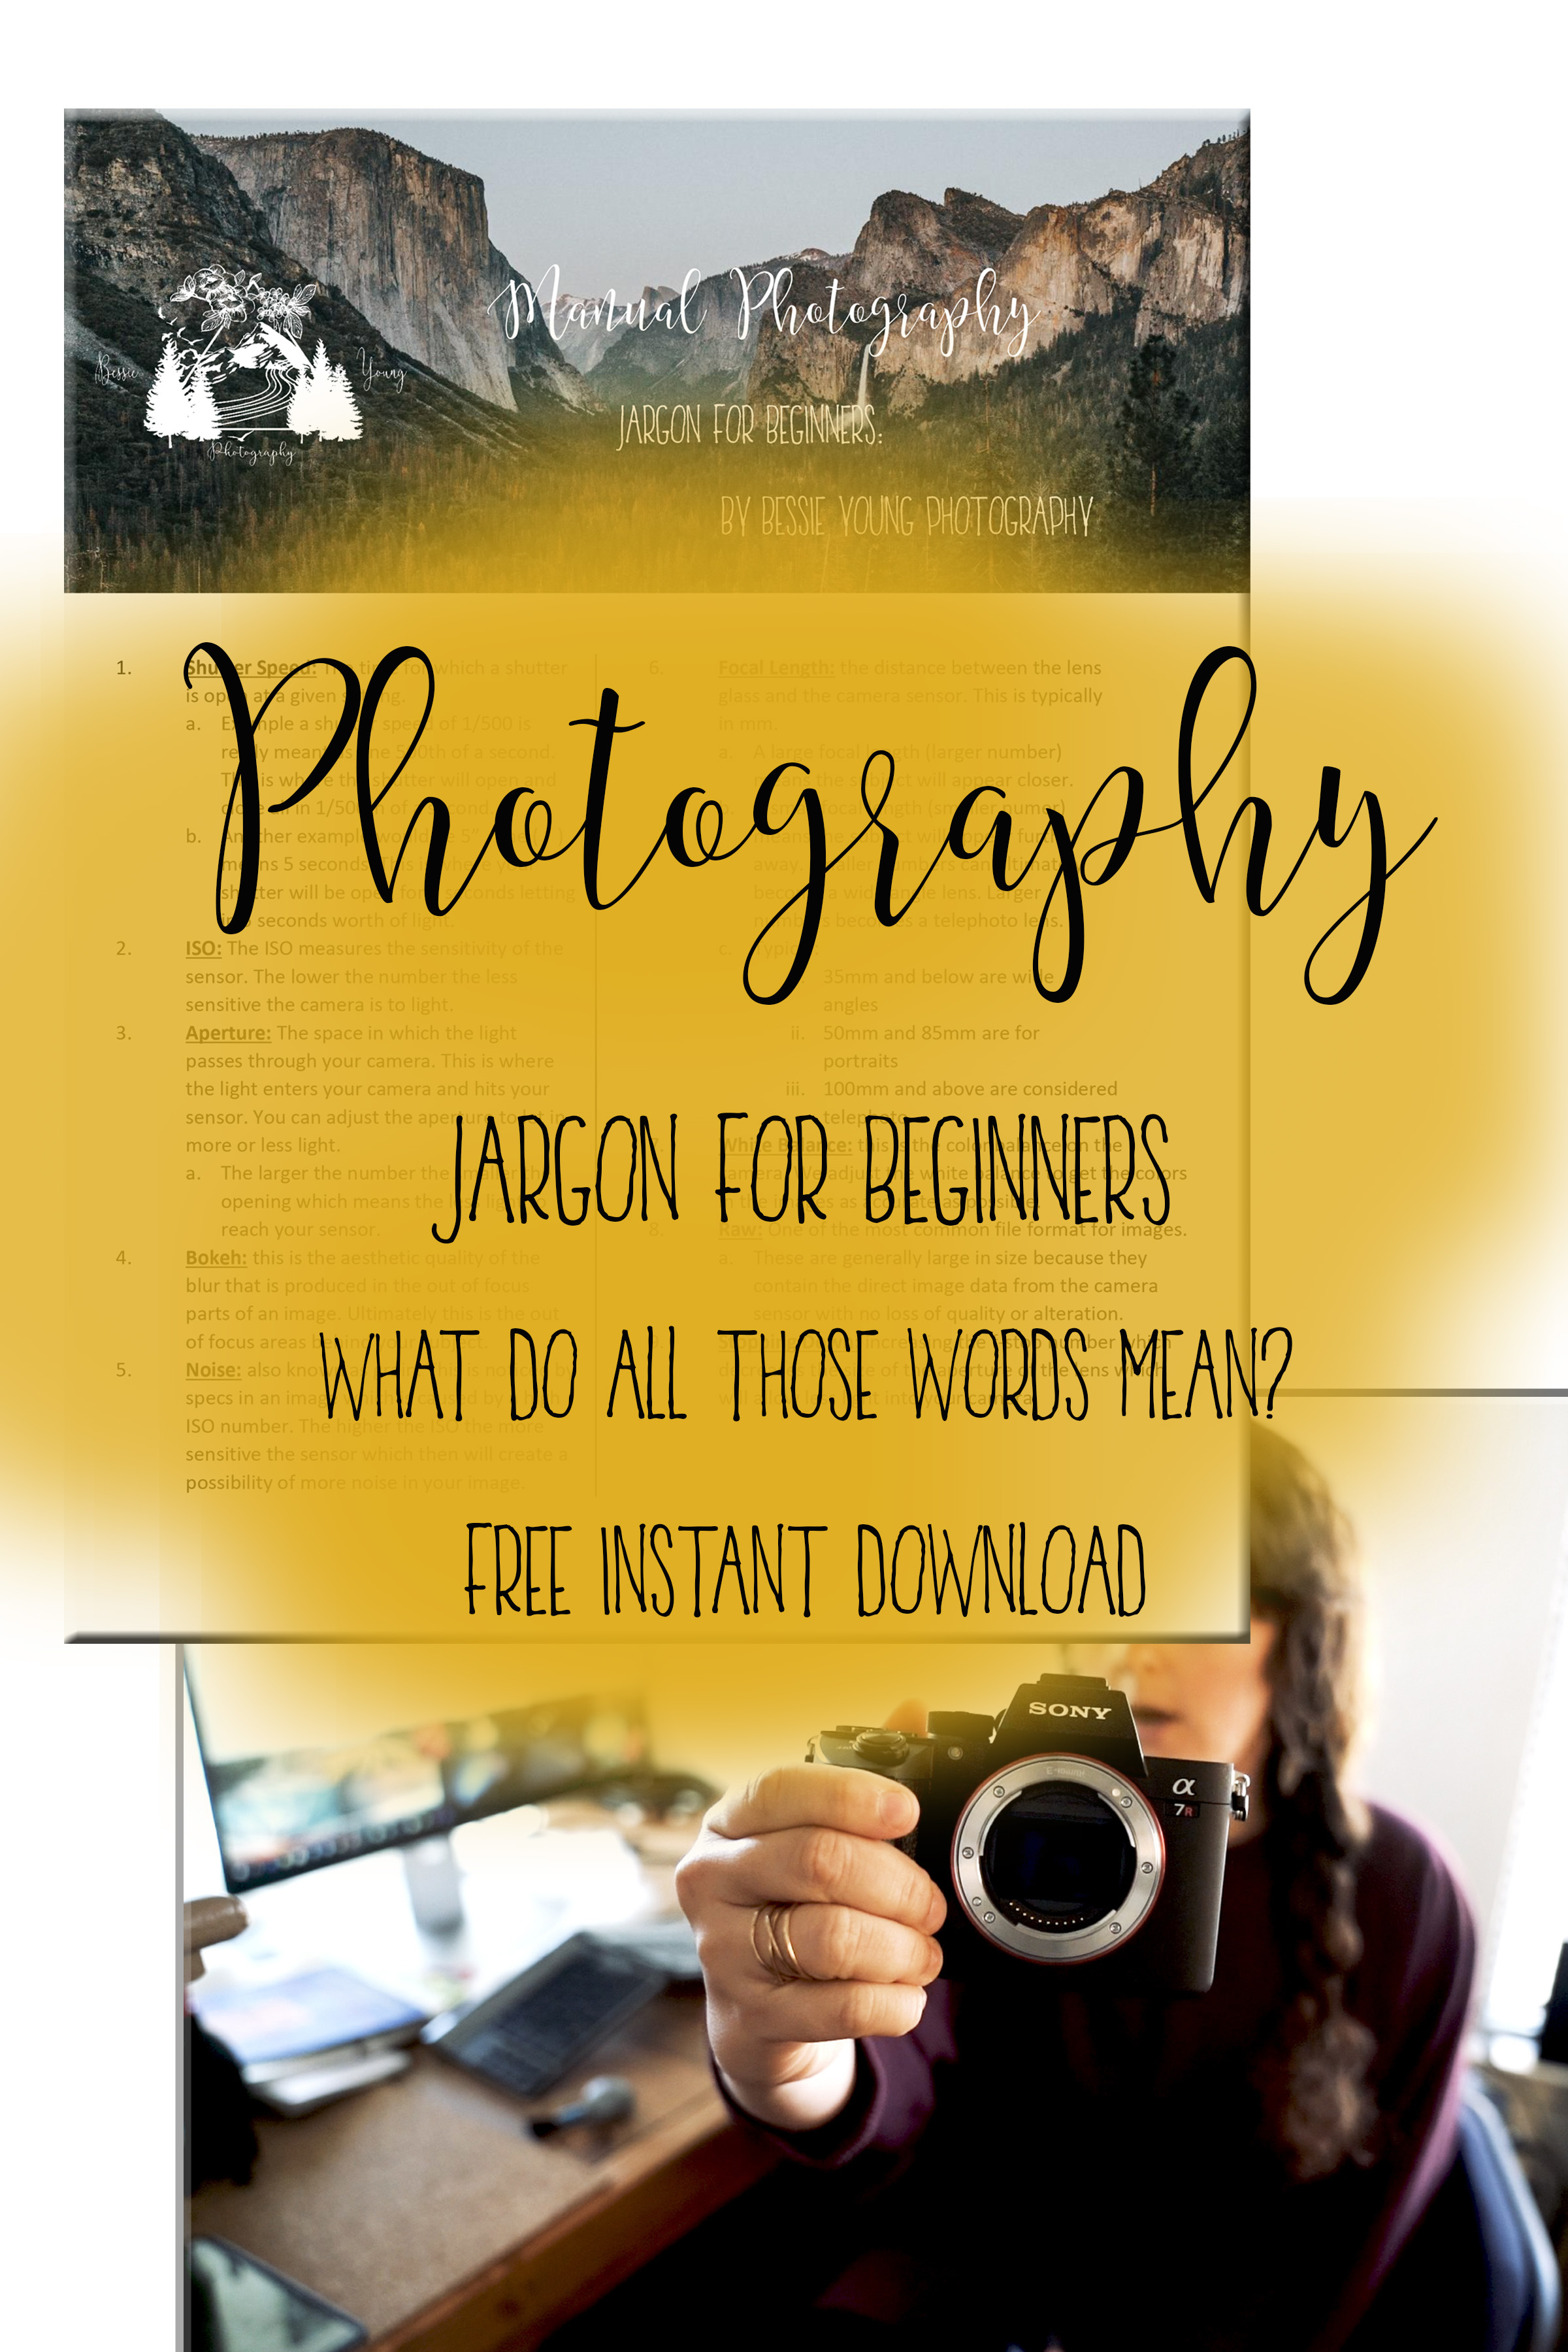 Manual Photography Jargon for Beginners by Bessie Young Photography - Free Downloadable guide photography cheat sheet.jpg